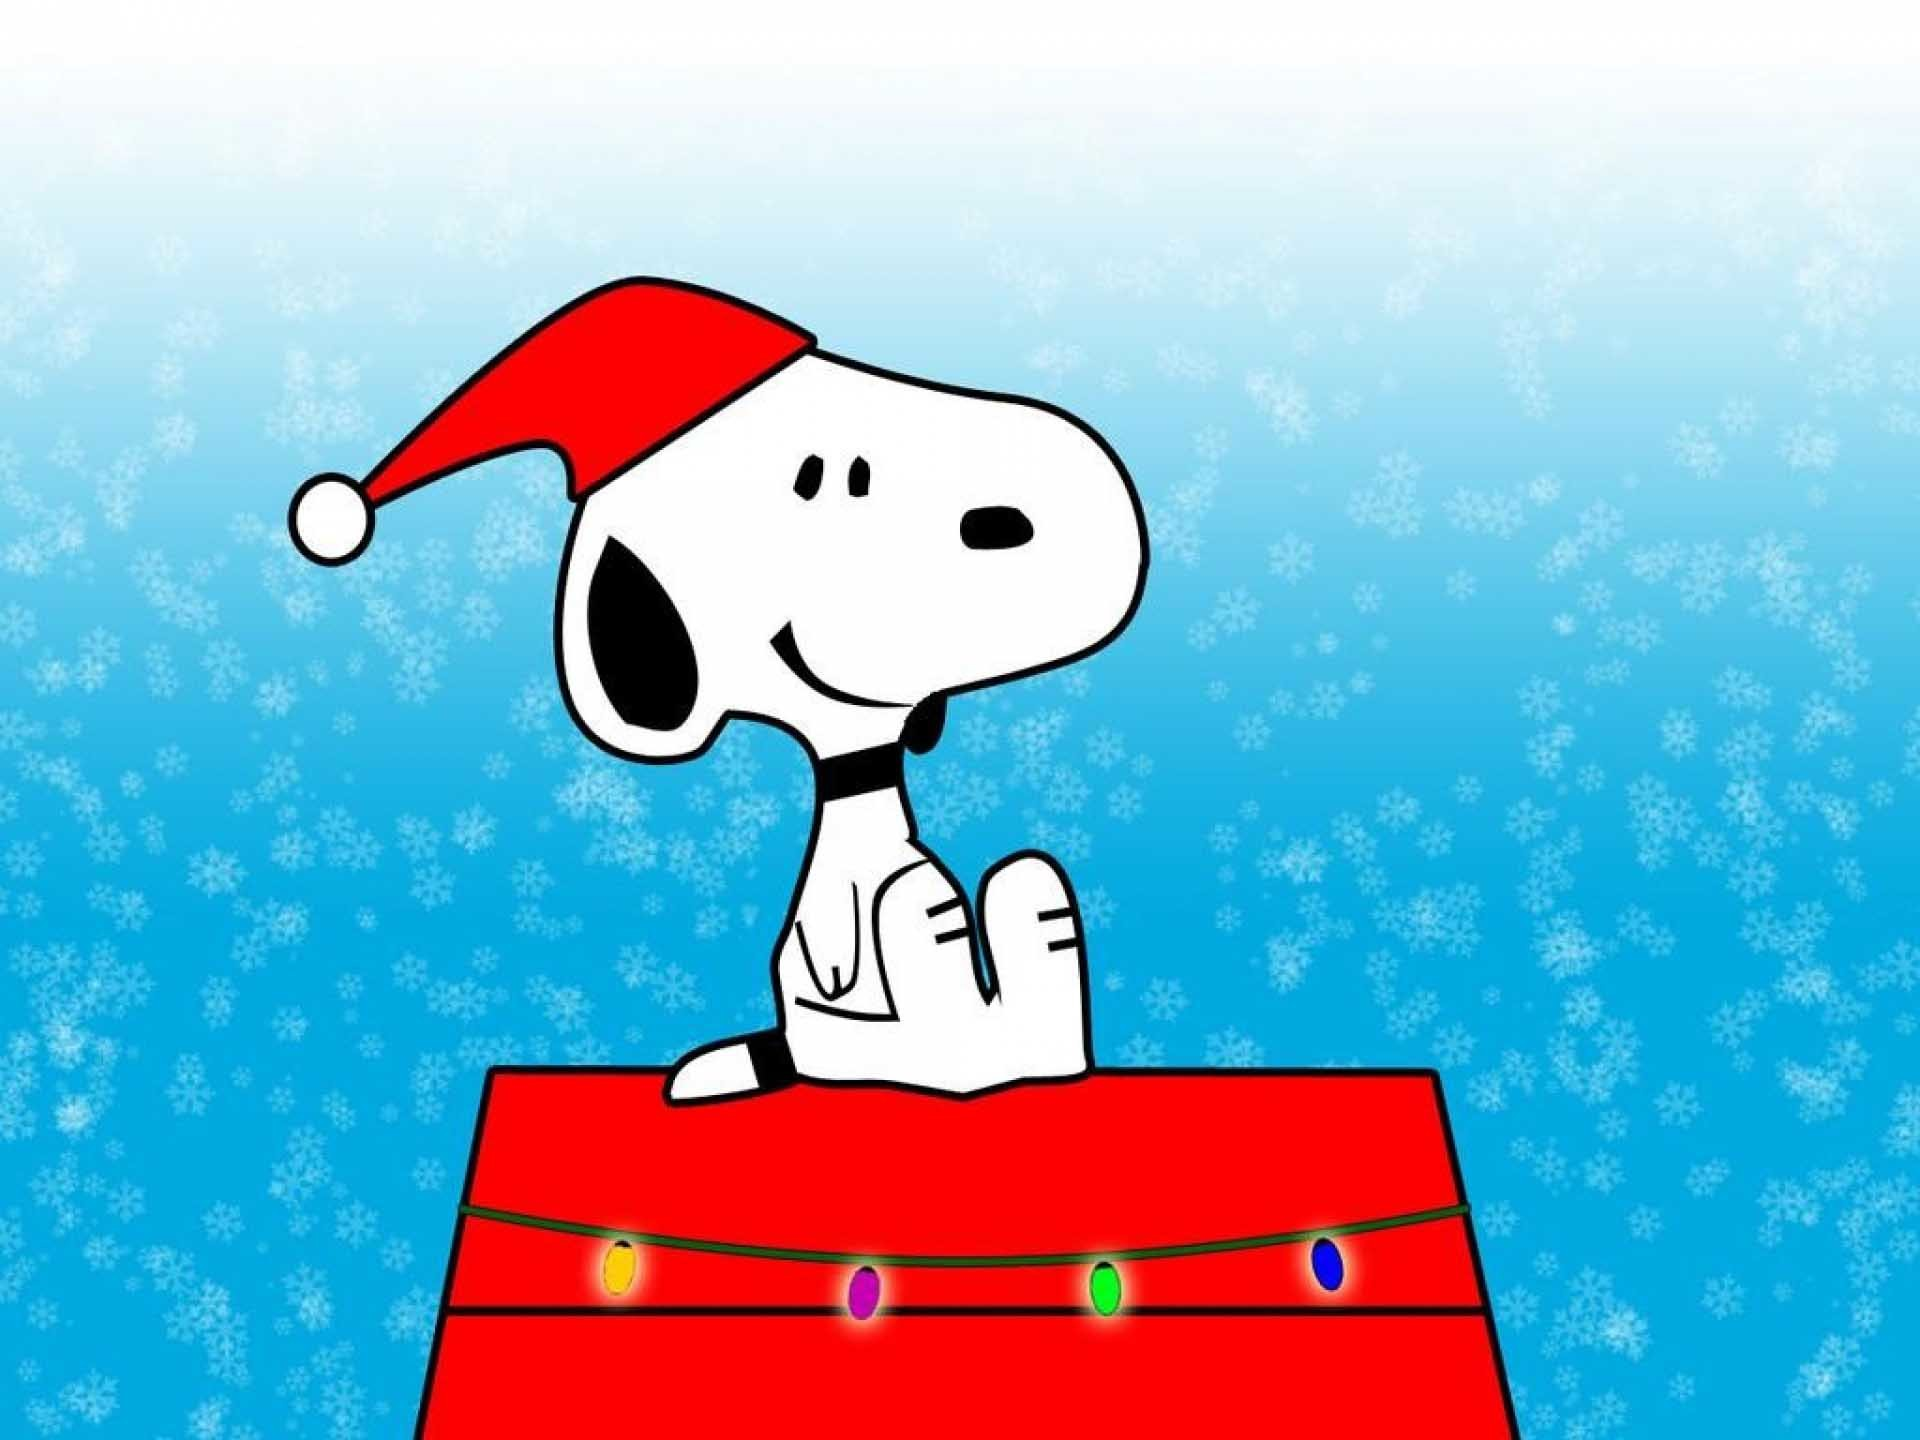 1920x1440 Snoopy Christmas HD Wallpapers for Desktop